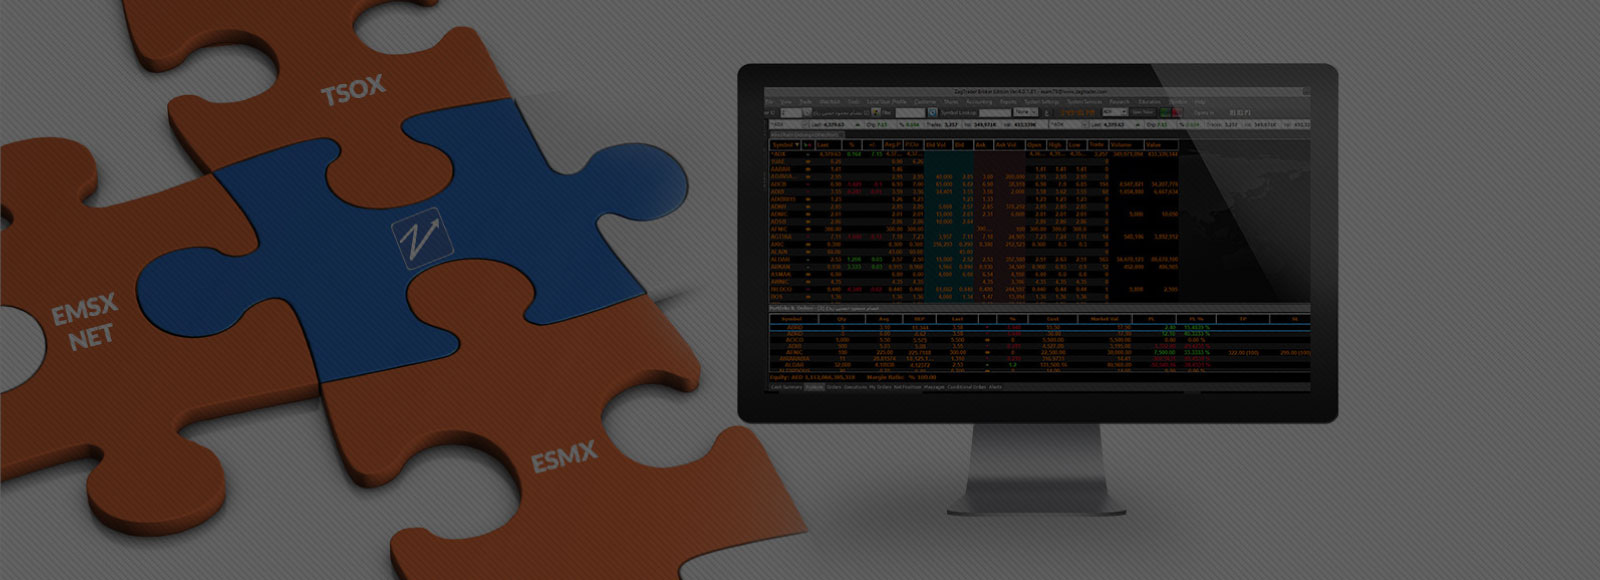 ZagTrader speaks Bloomberg EMSX, TSOX, and EMSX NET fluently